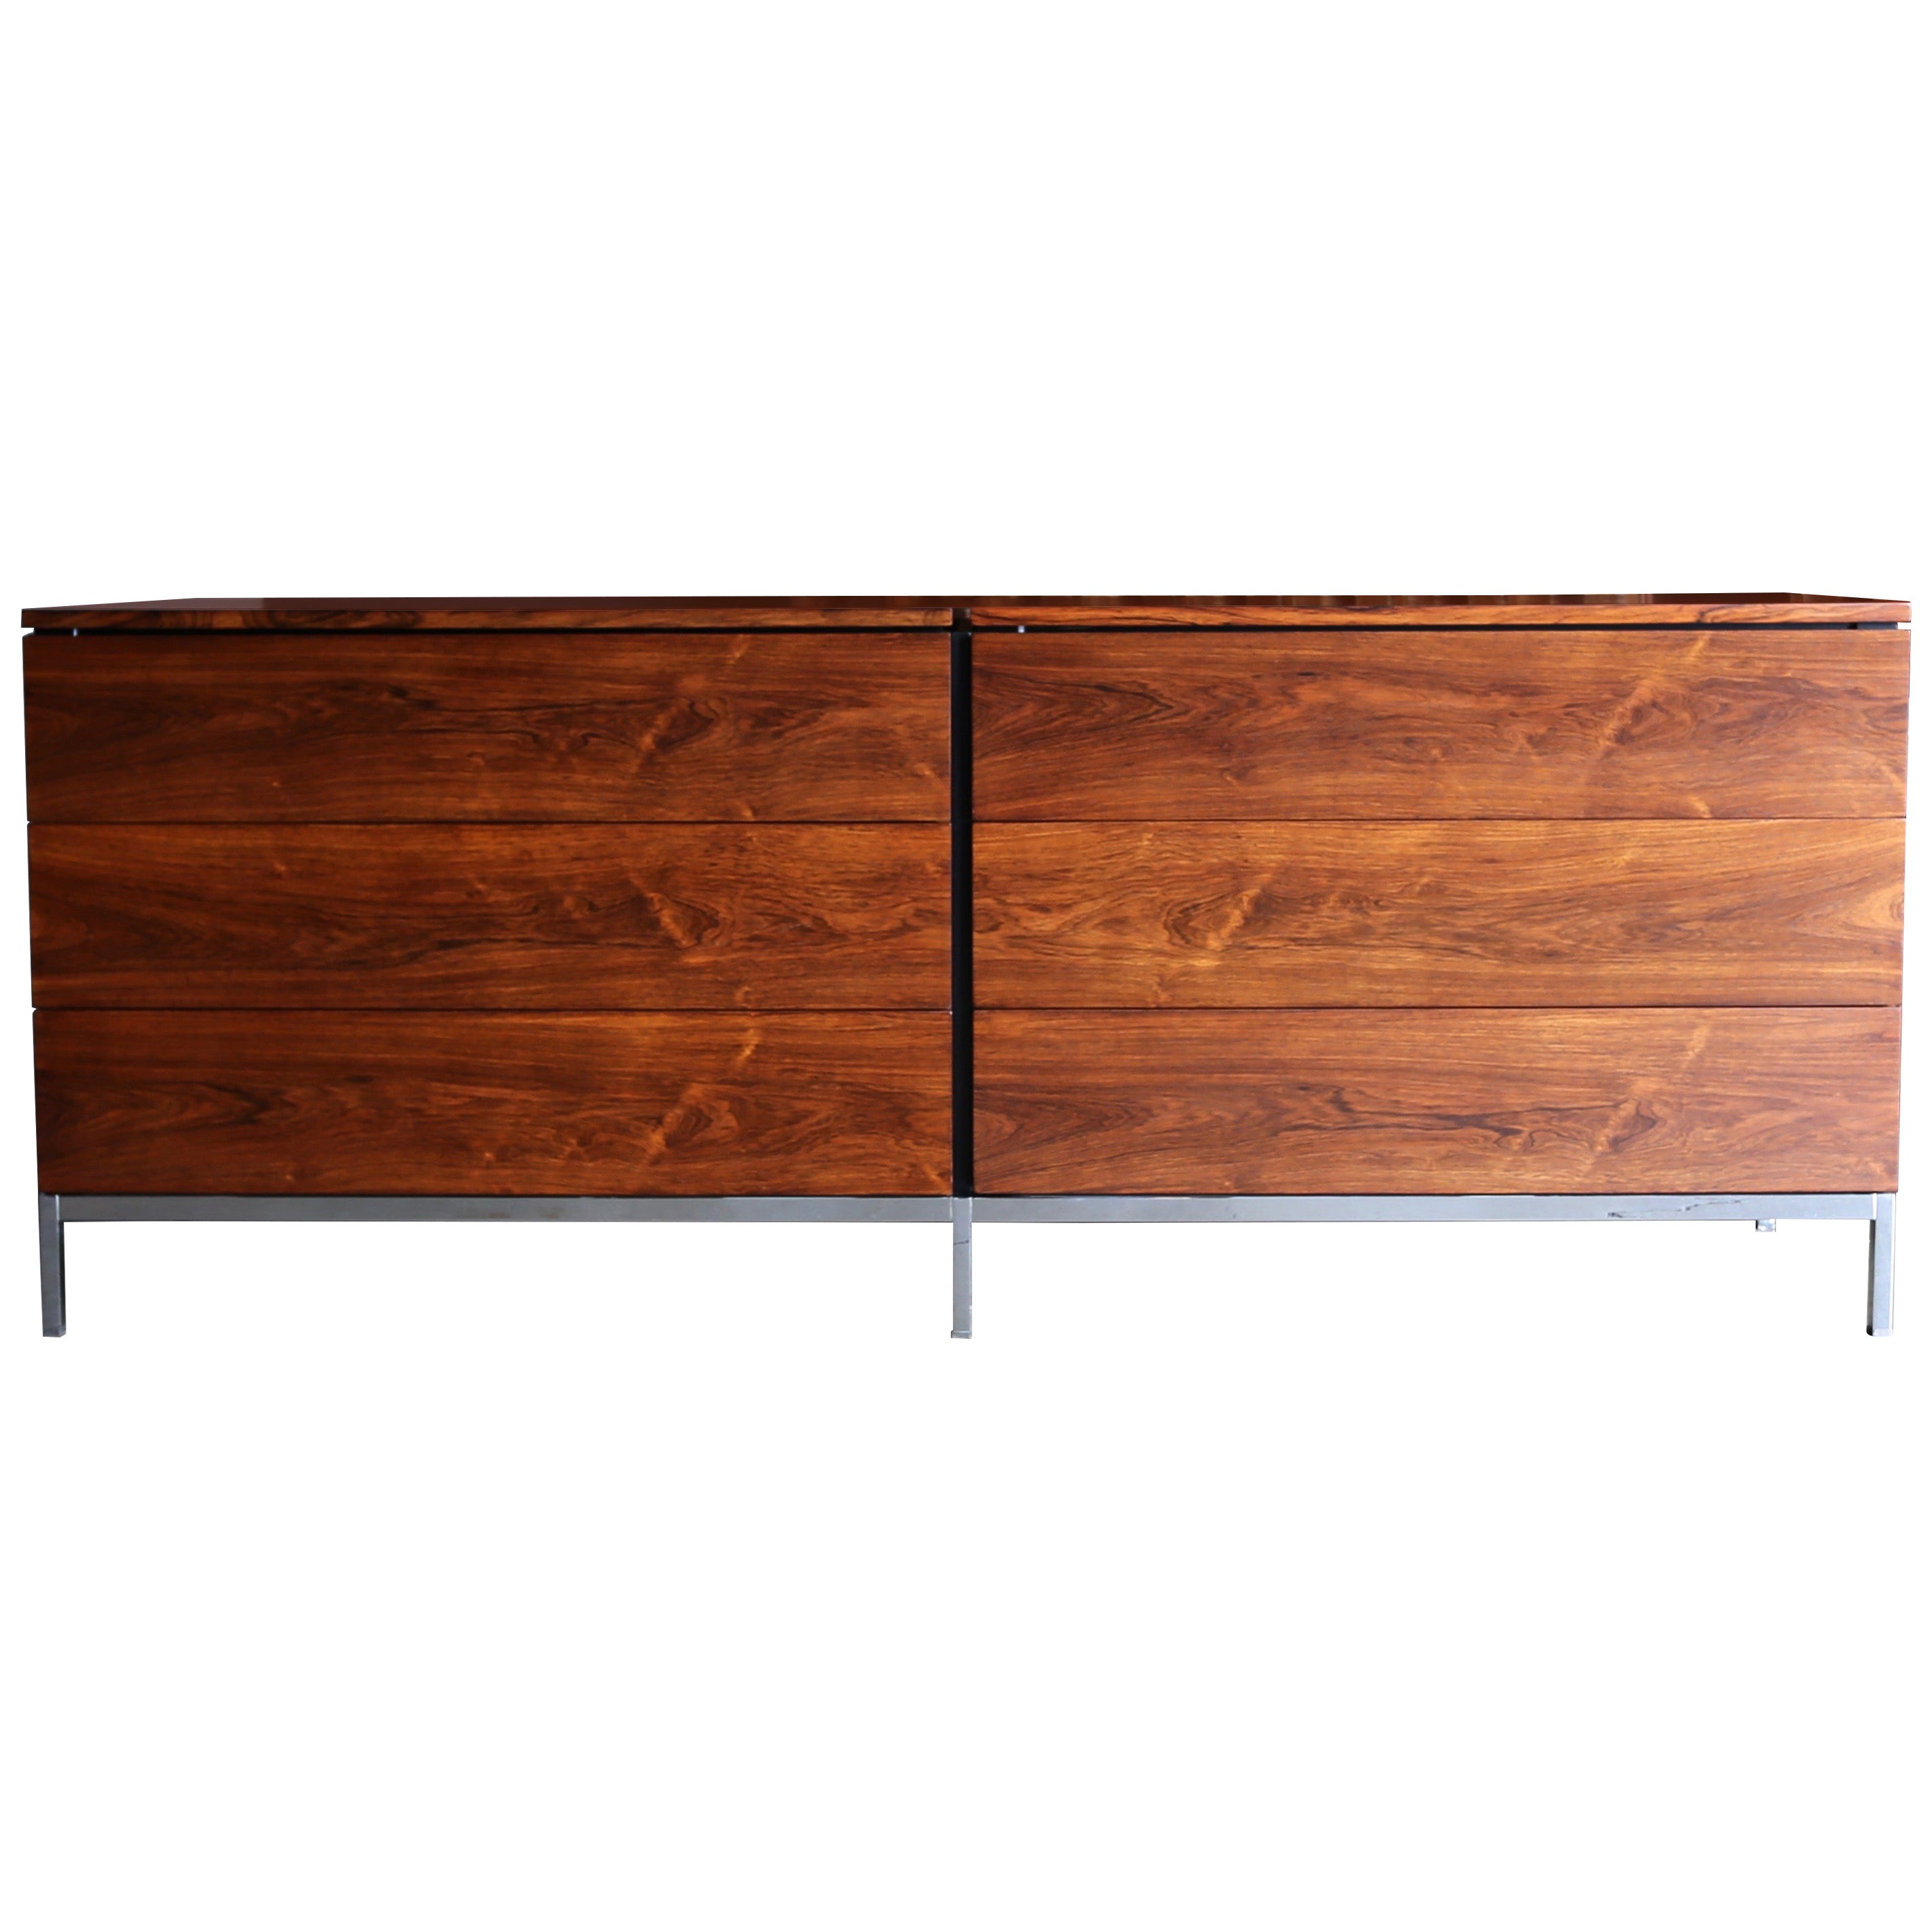 Florence Knoll Rosewood Chest for Knoll, circa 1960